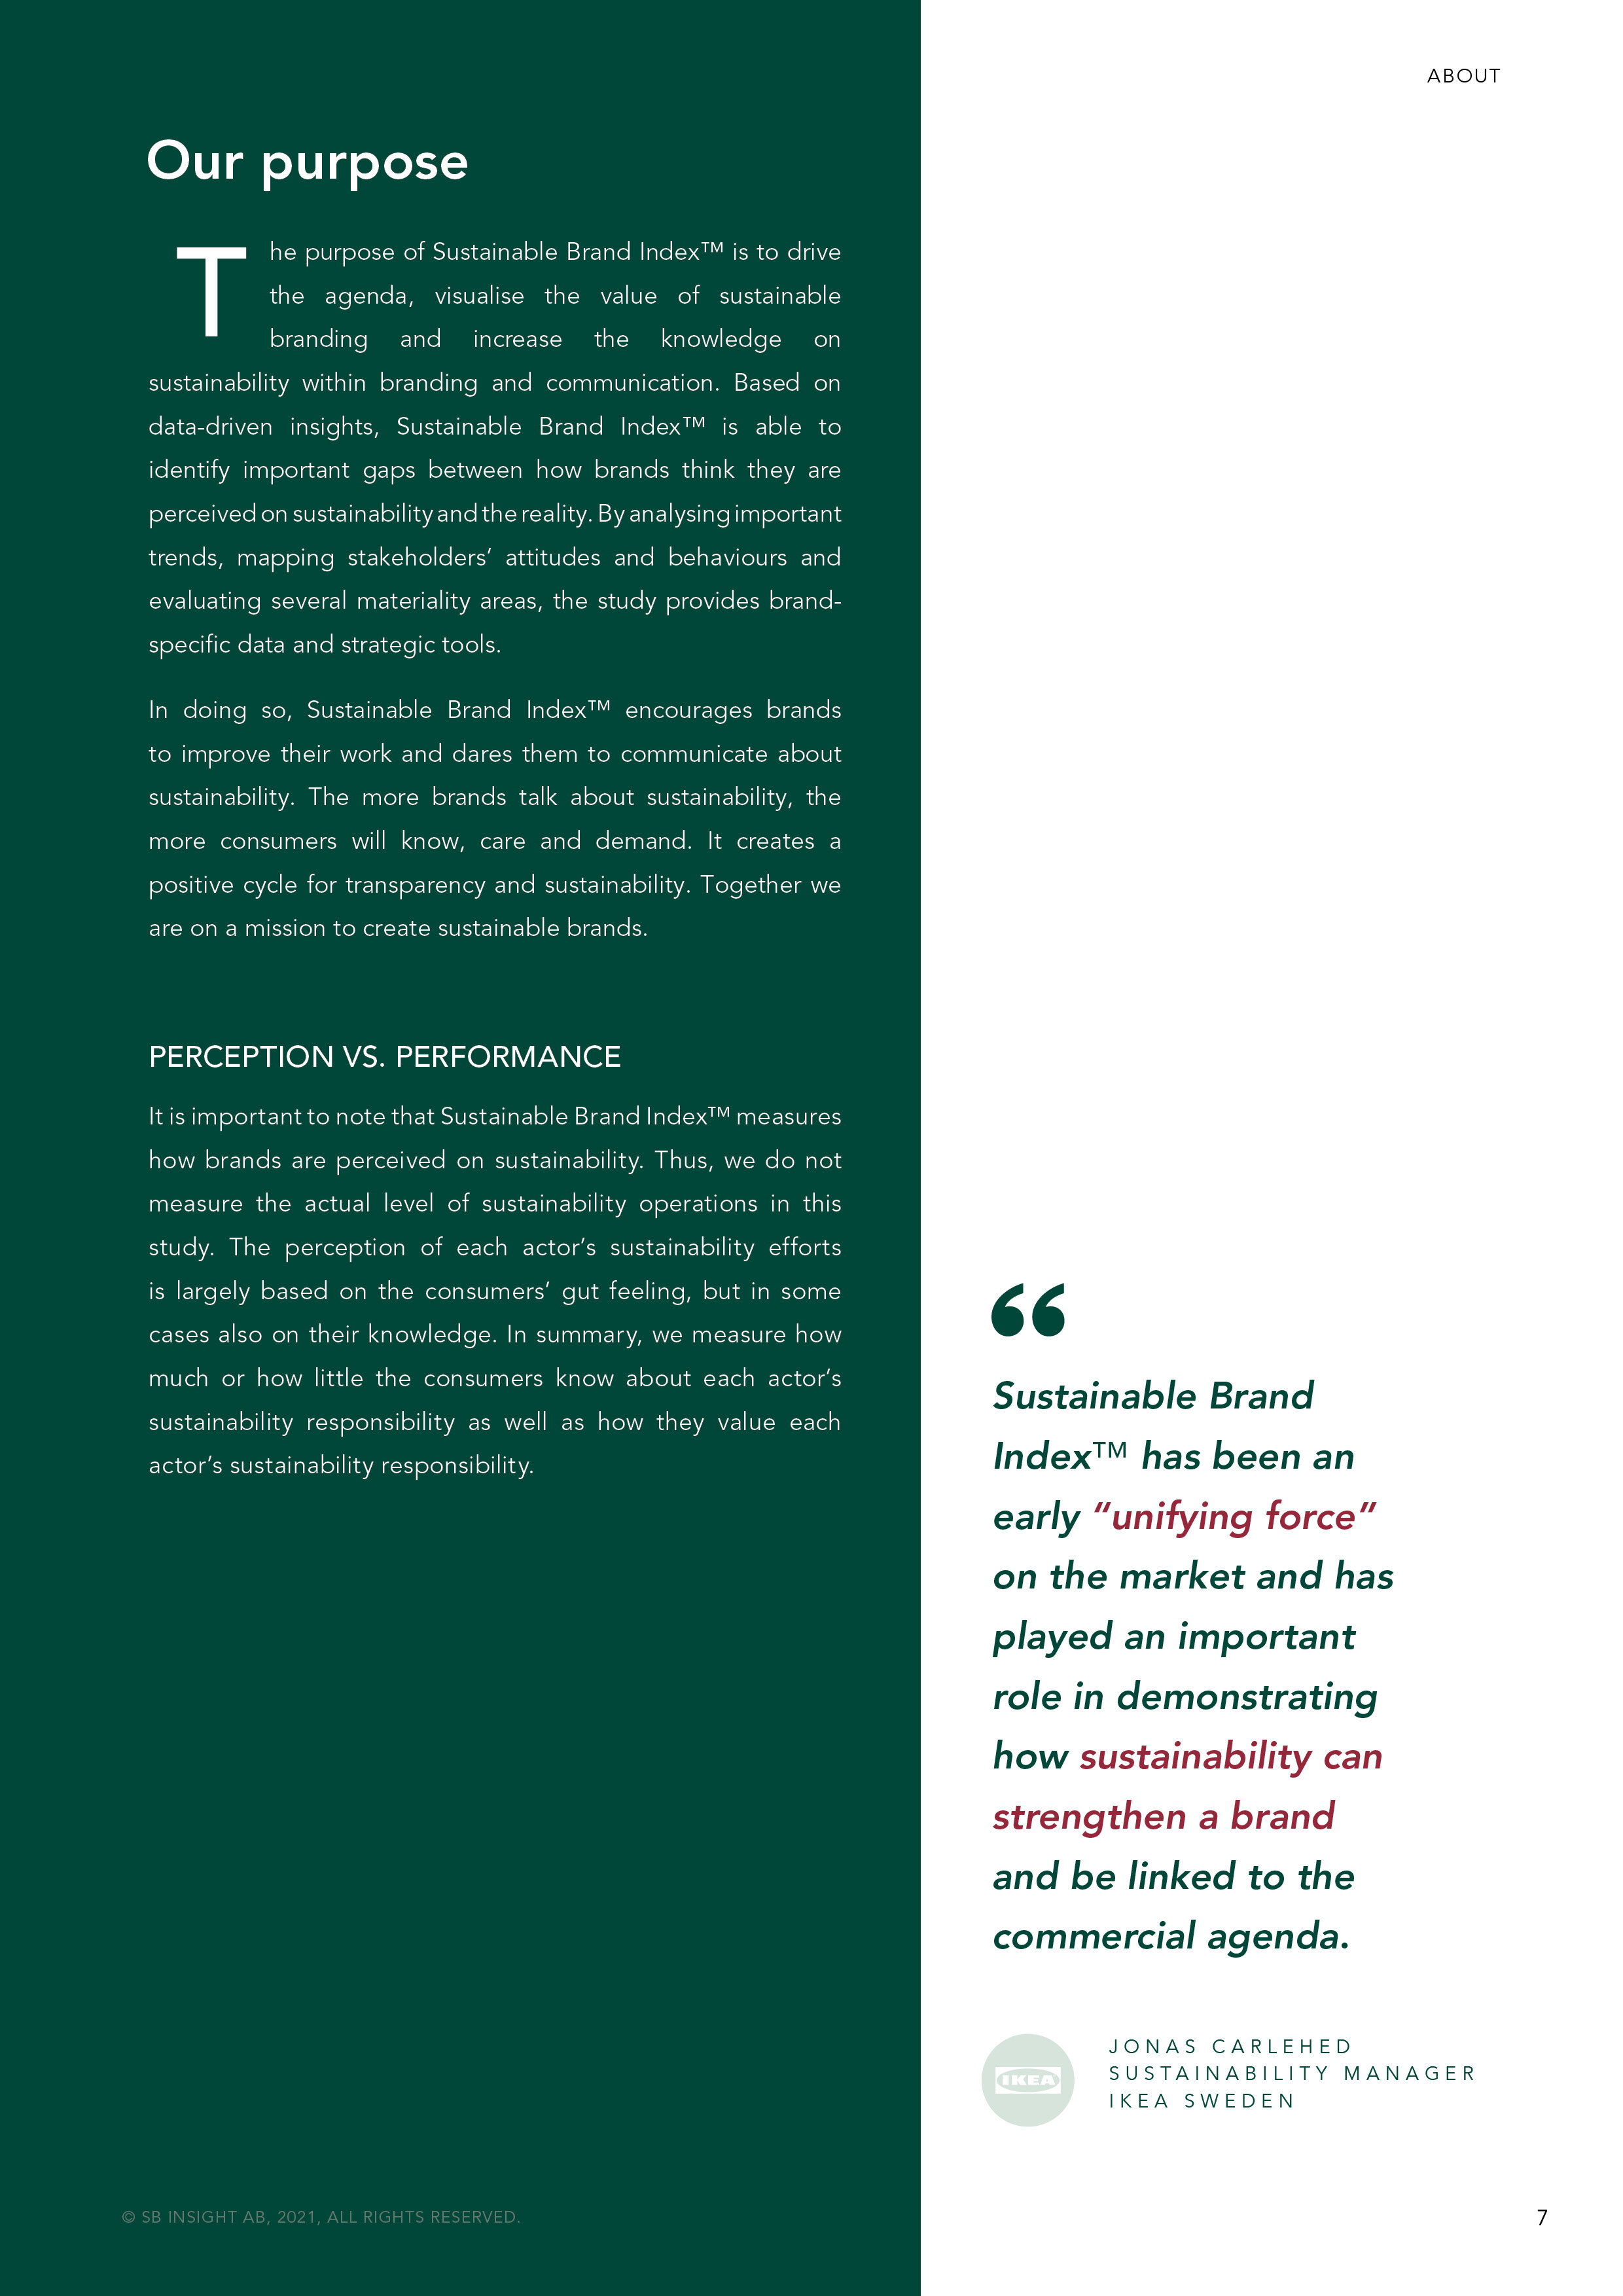 FI_Official Report_2021_Sustainable Brand Index7.jpg